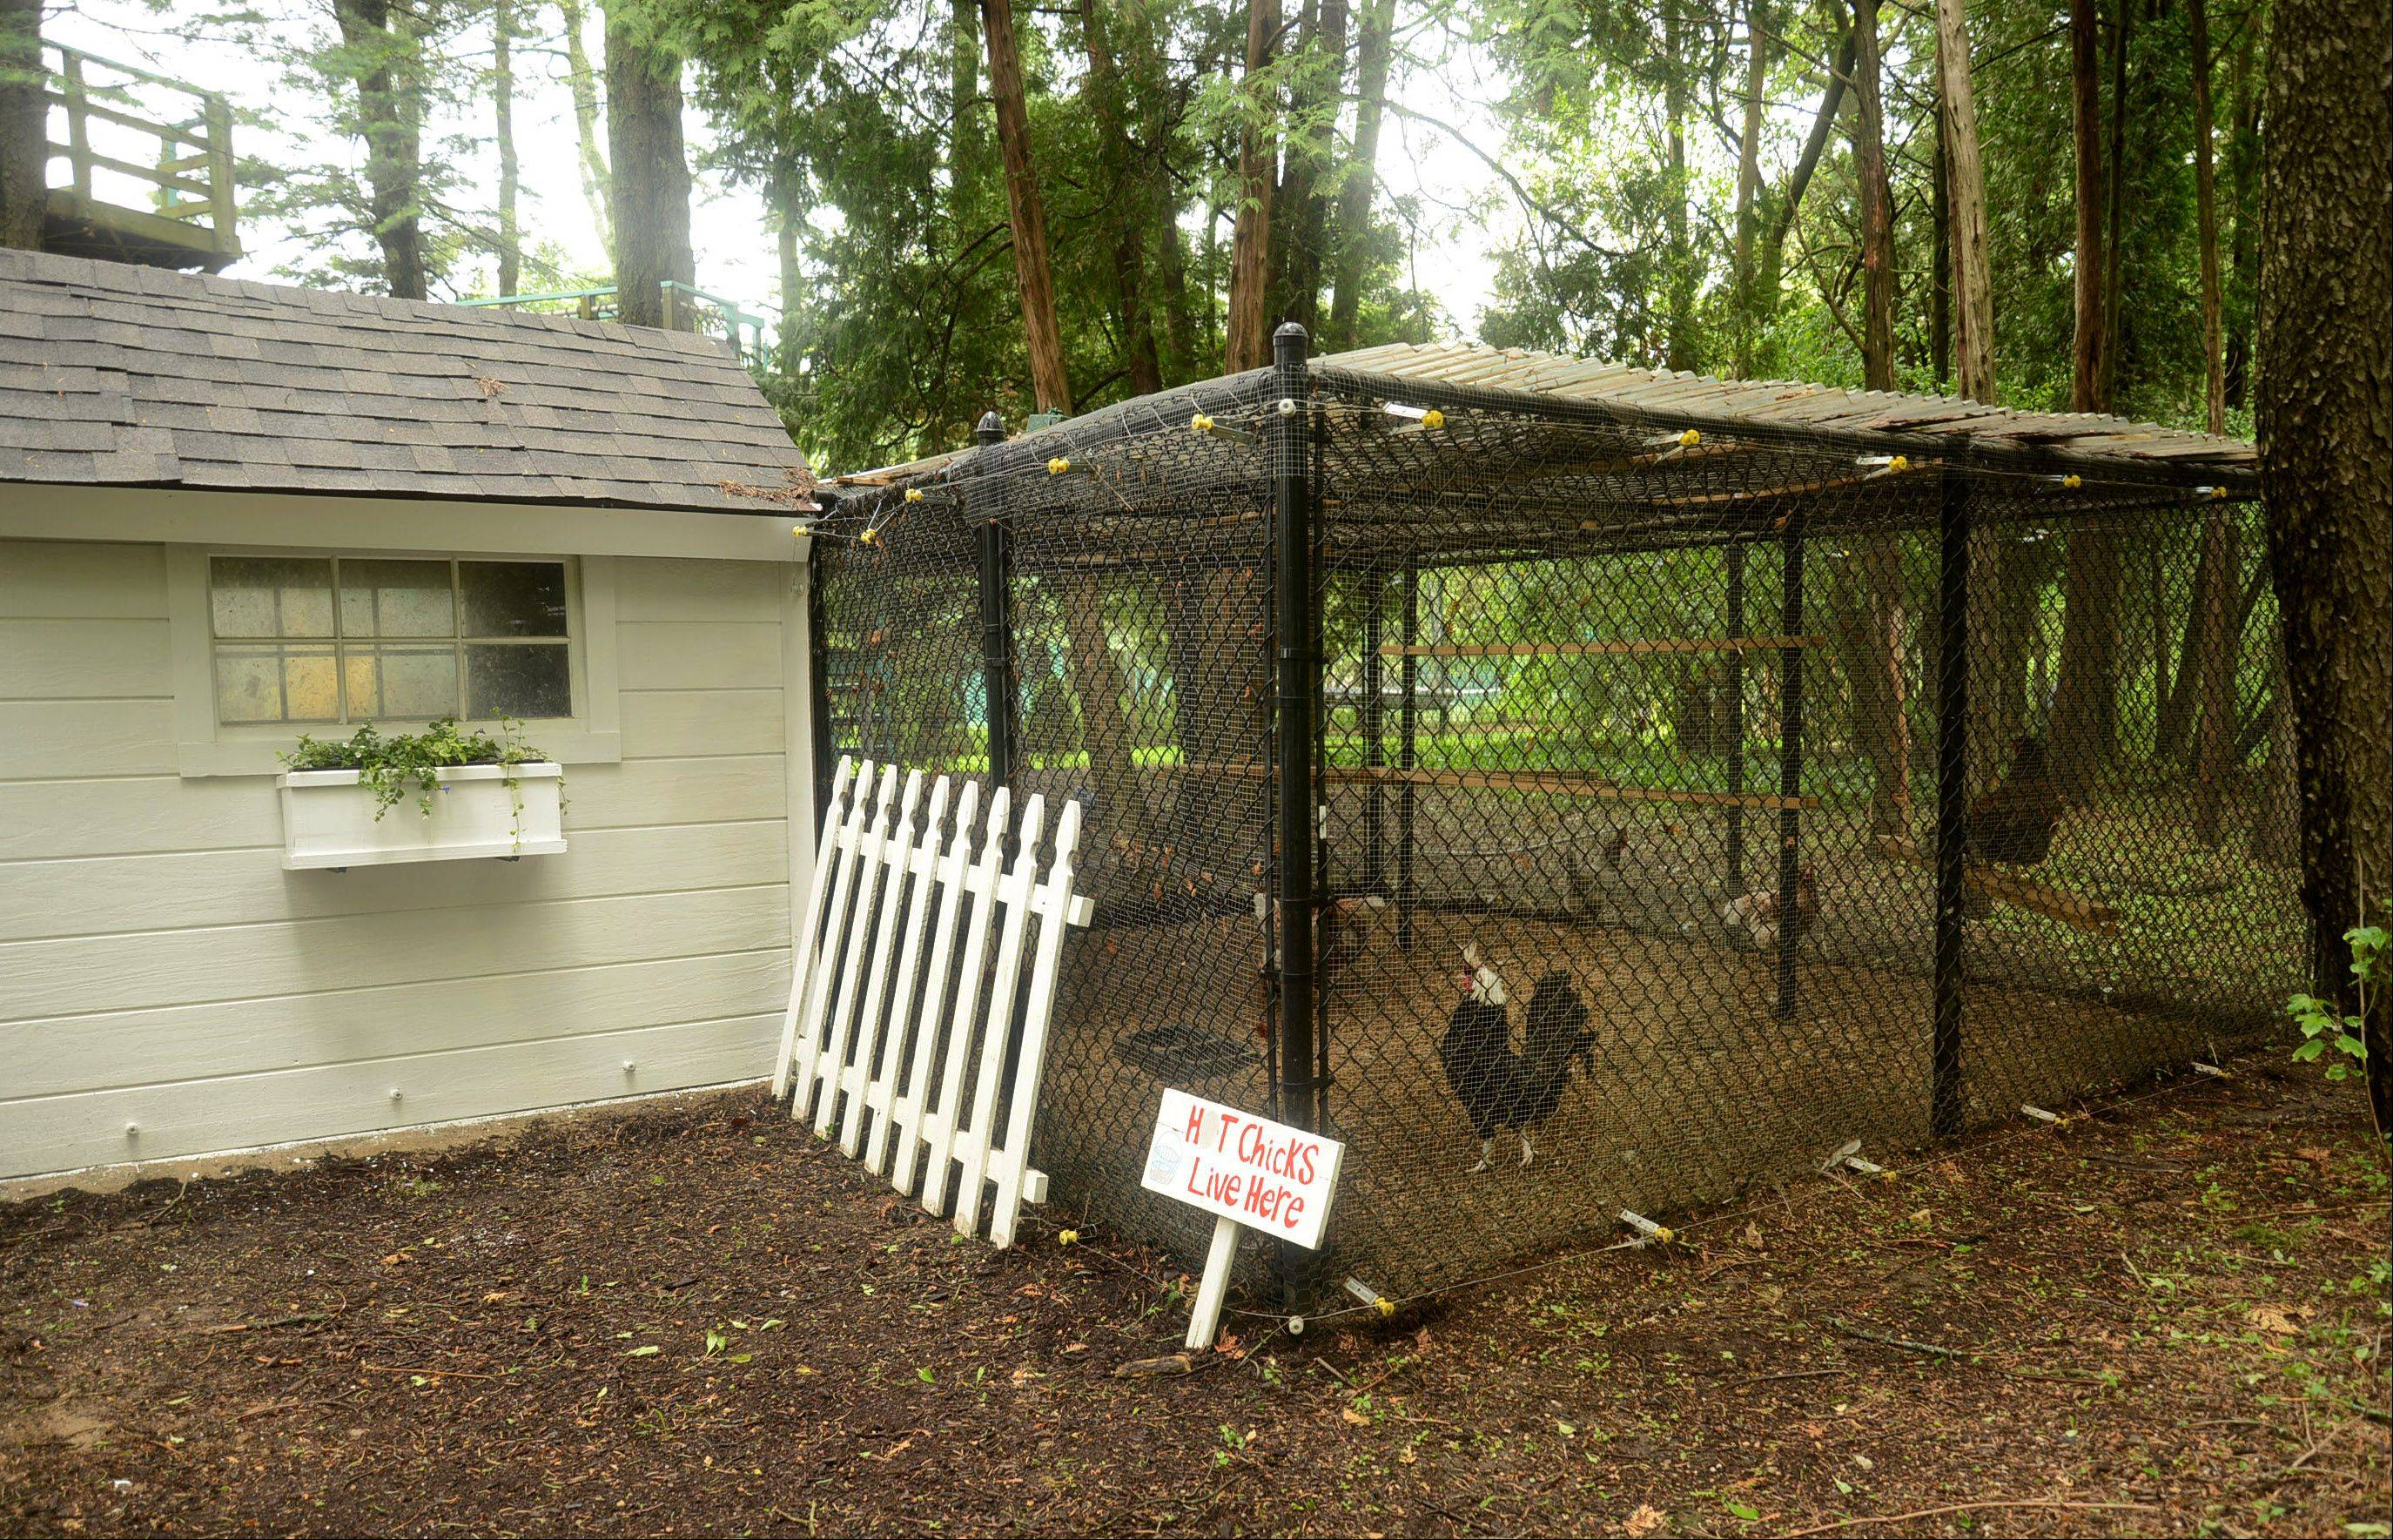 The chickens stay in their coop year-round with only a little heat in the winter.